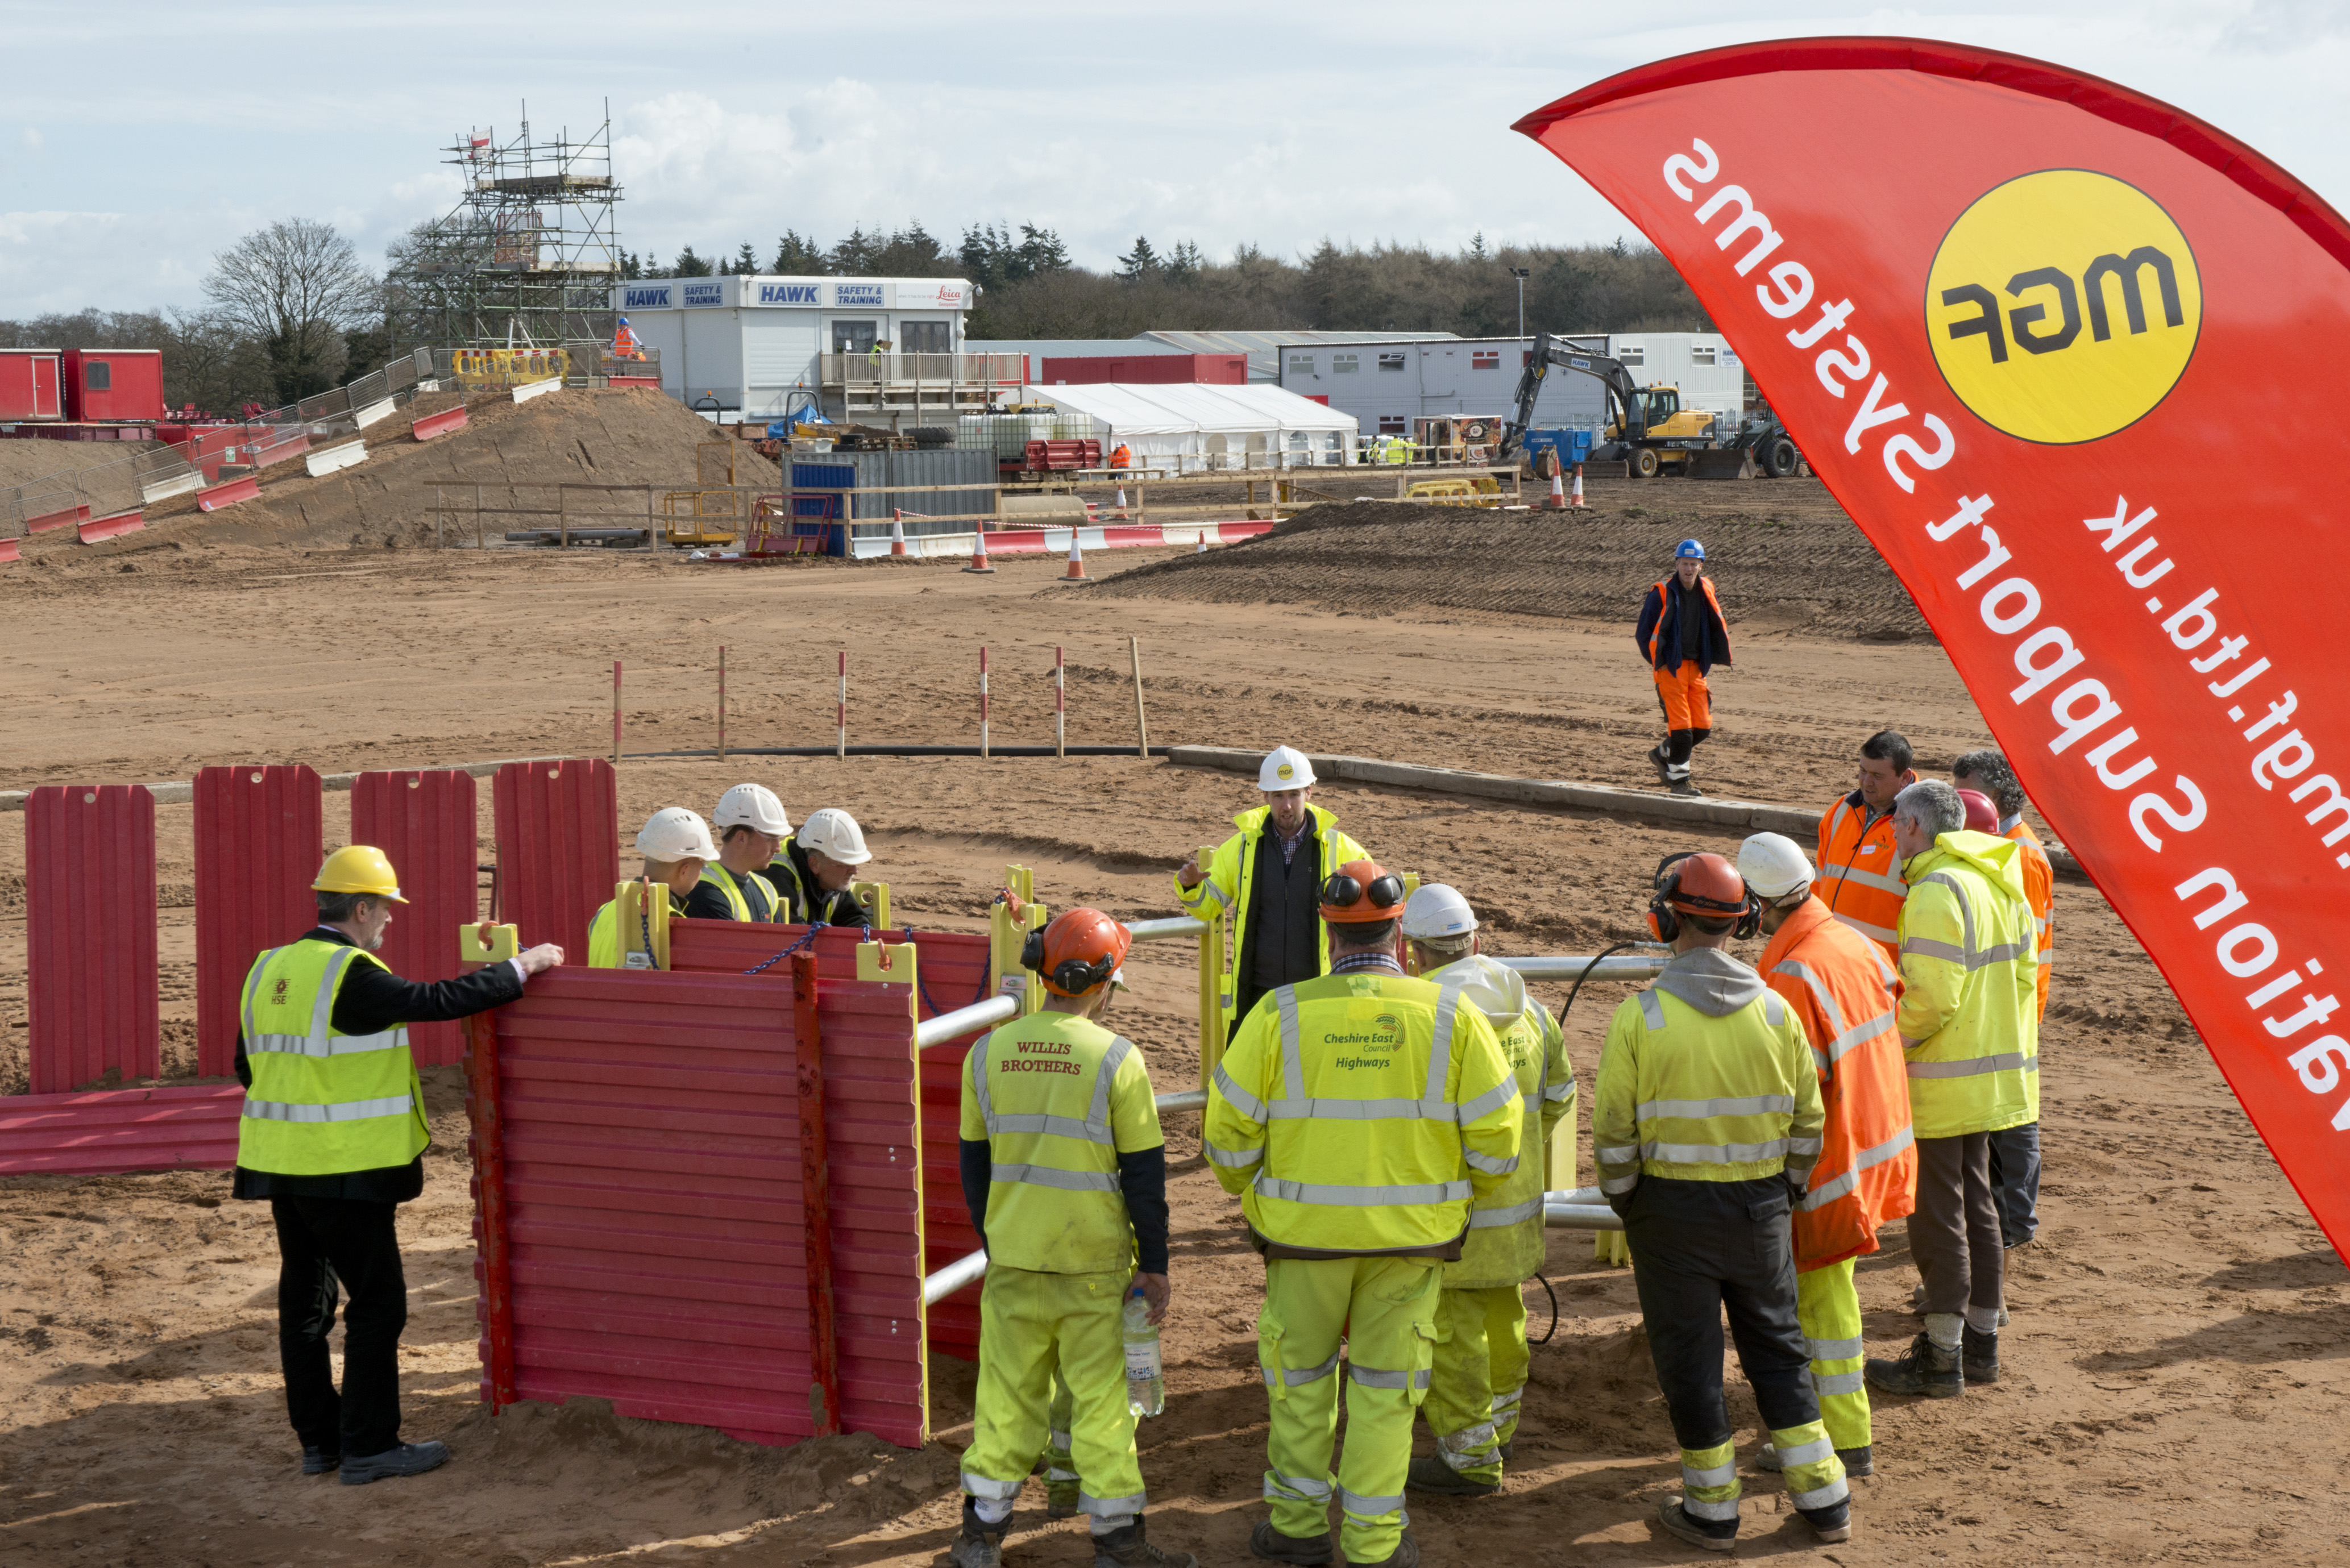 Demonstration of MGF trench box at a construction site with a group of workers in protective gear watching